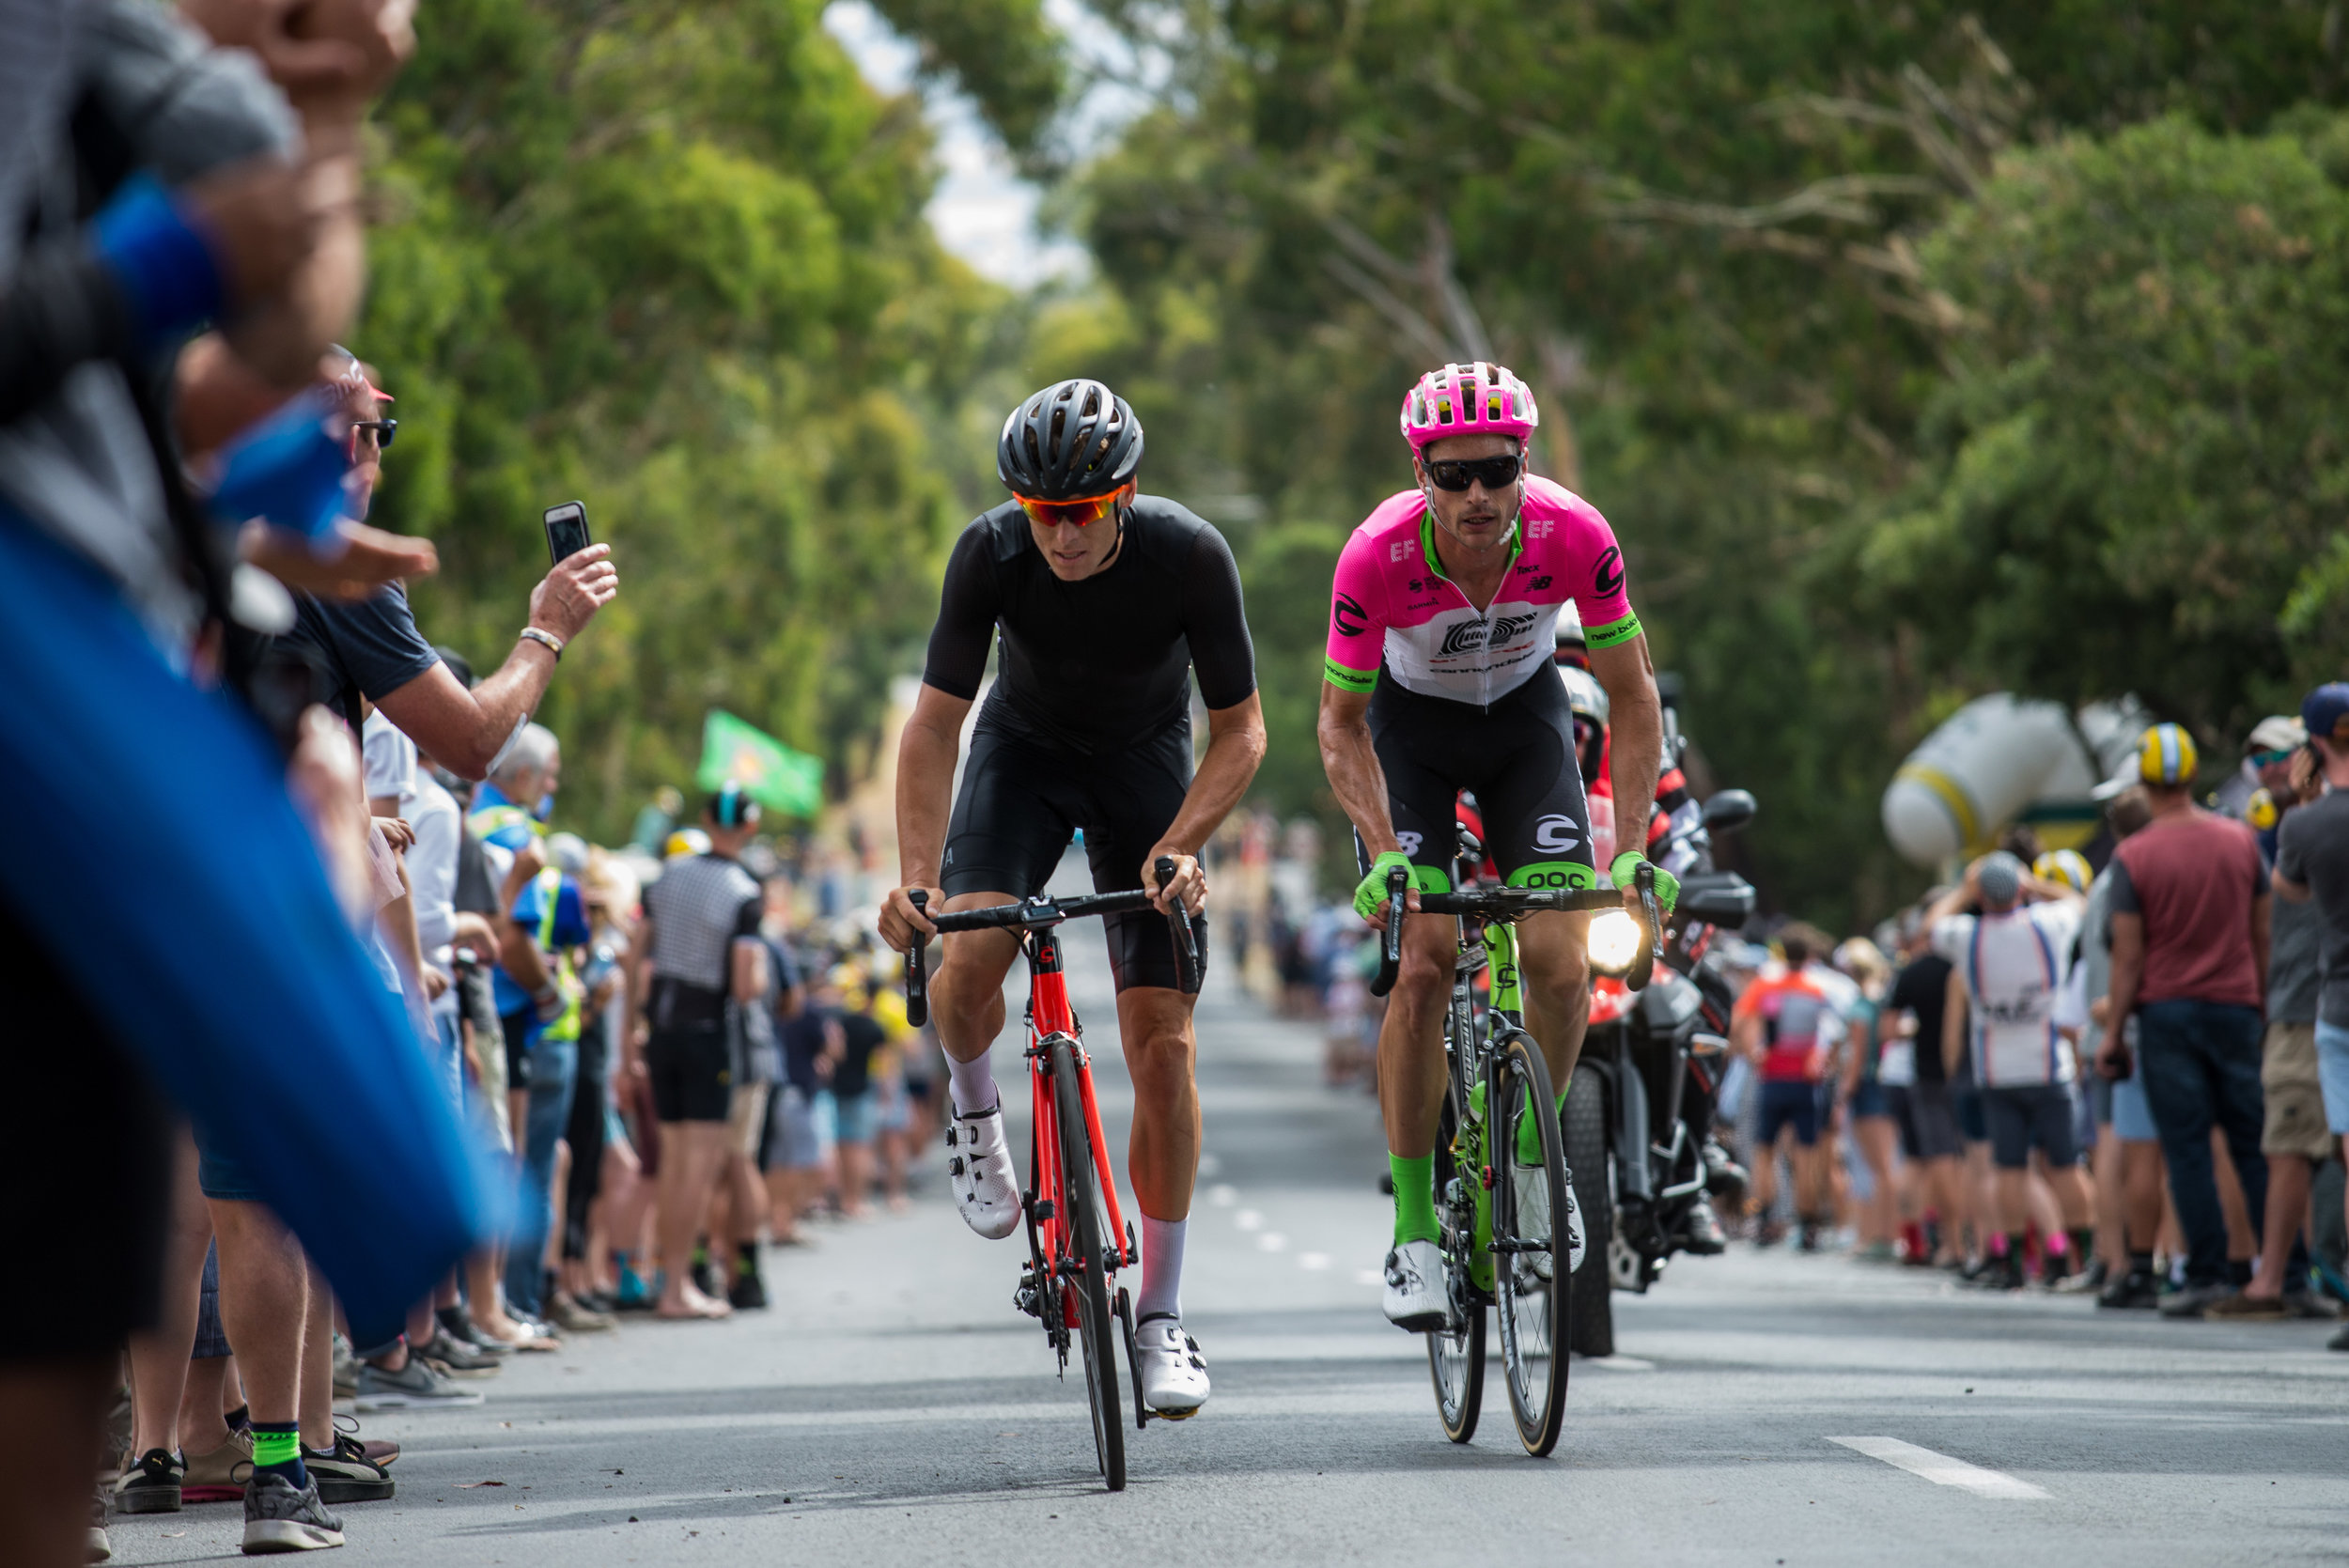 Nikon D610, Nikkor 70-200 4G, 1/400, ISO-400. Breakaway heads up Mount Buninyong, Australian Road Nats 2018.